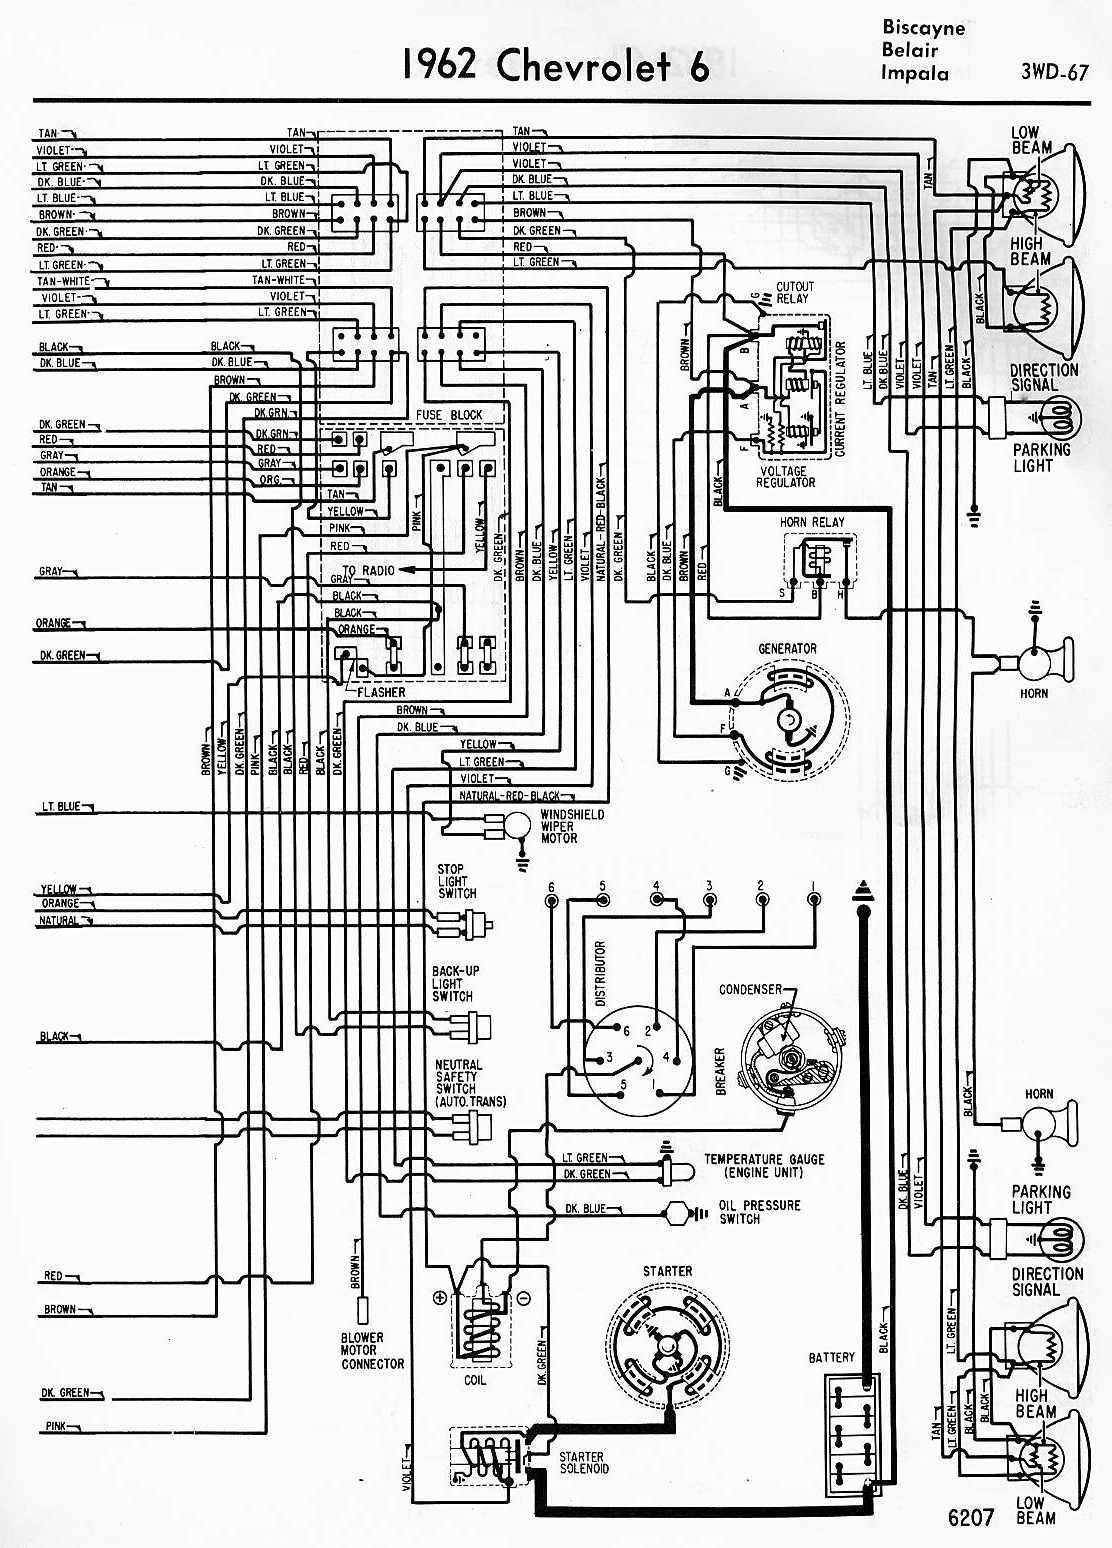 2008 Chevy Impala Door Lock Wiring Diagram Free Download